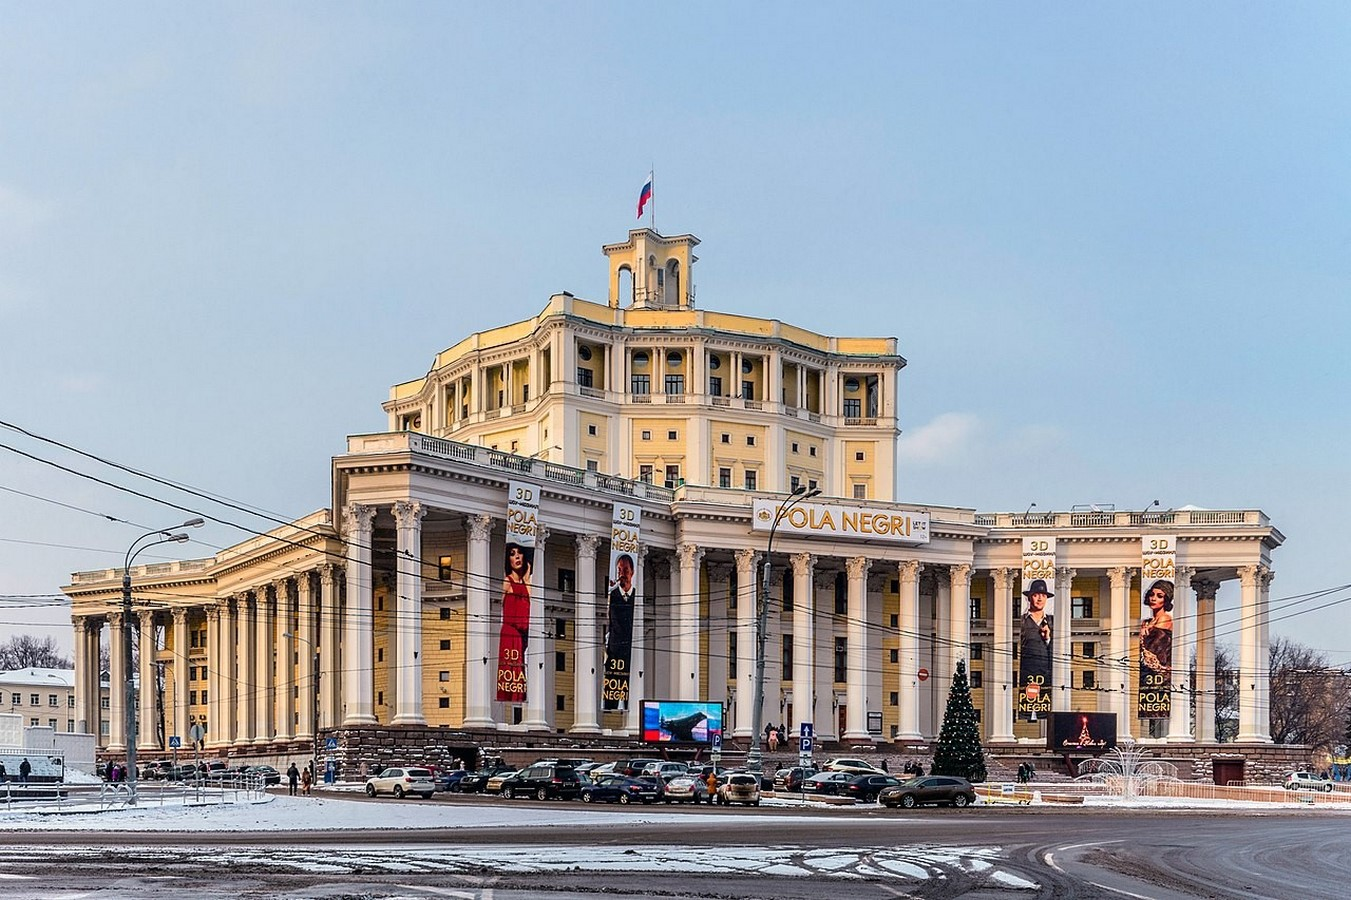 10 Things you did not know about the Stalinist architecture - Sheet3